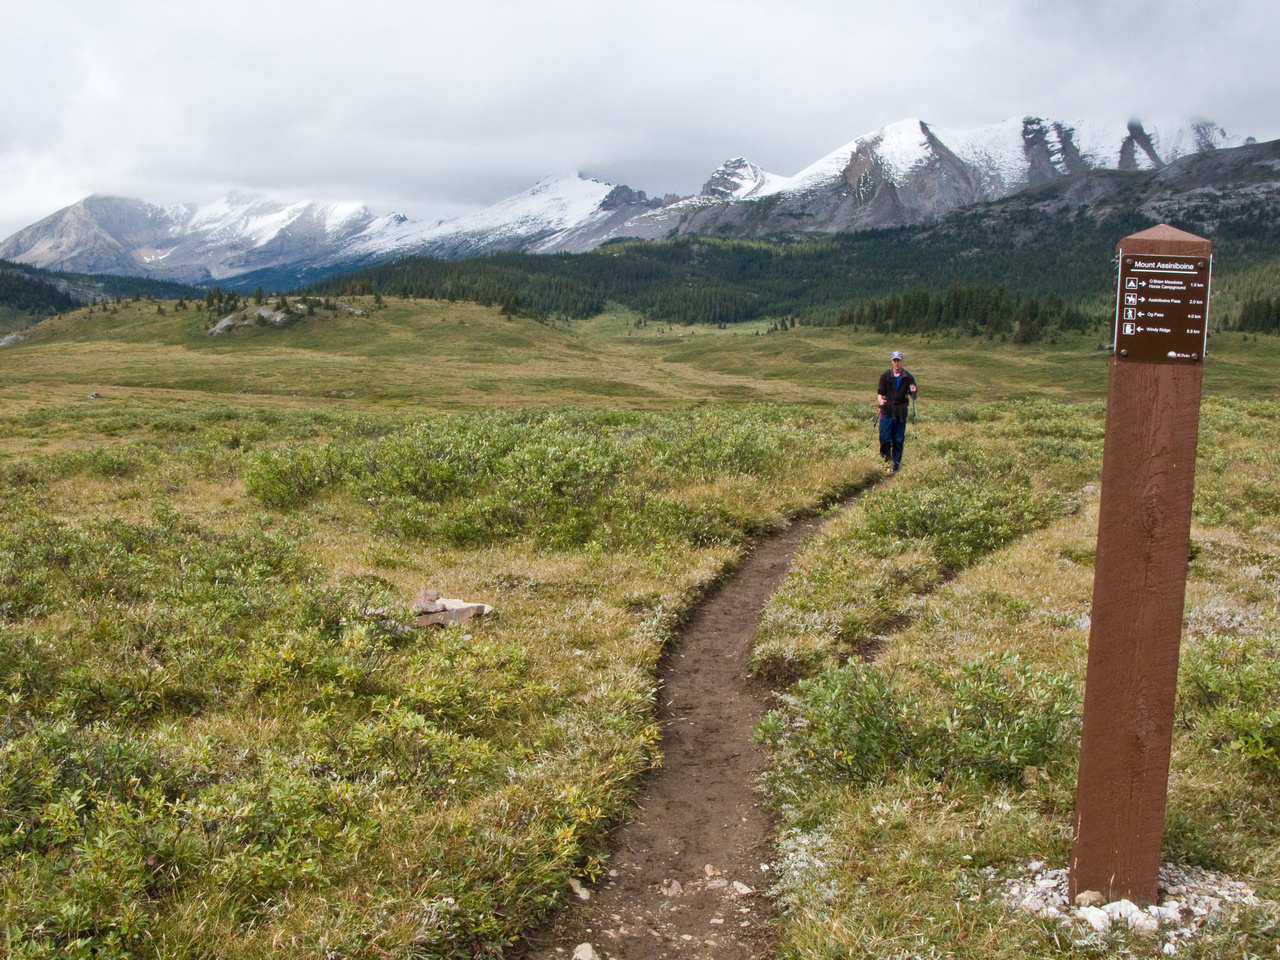 Rod hikes back to the Lodge area with Og Mountain in the background.